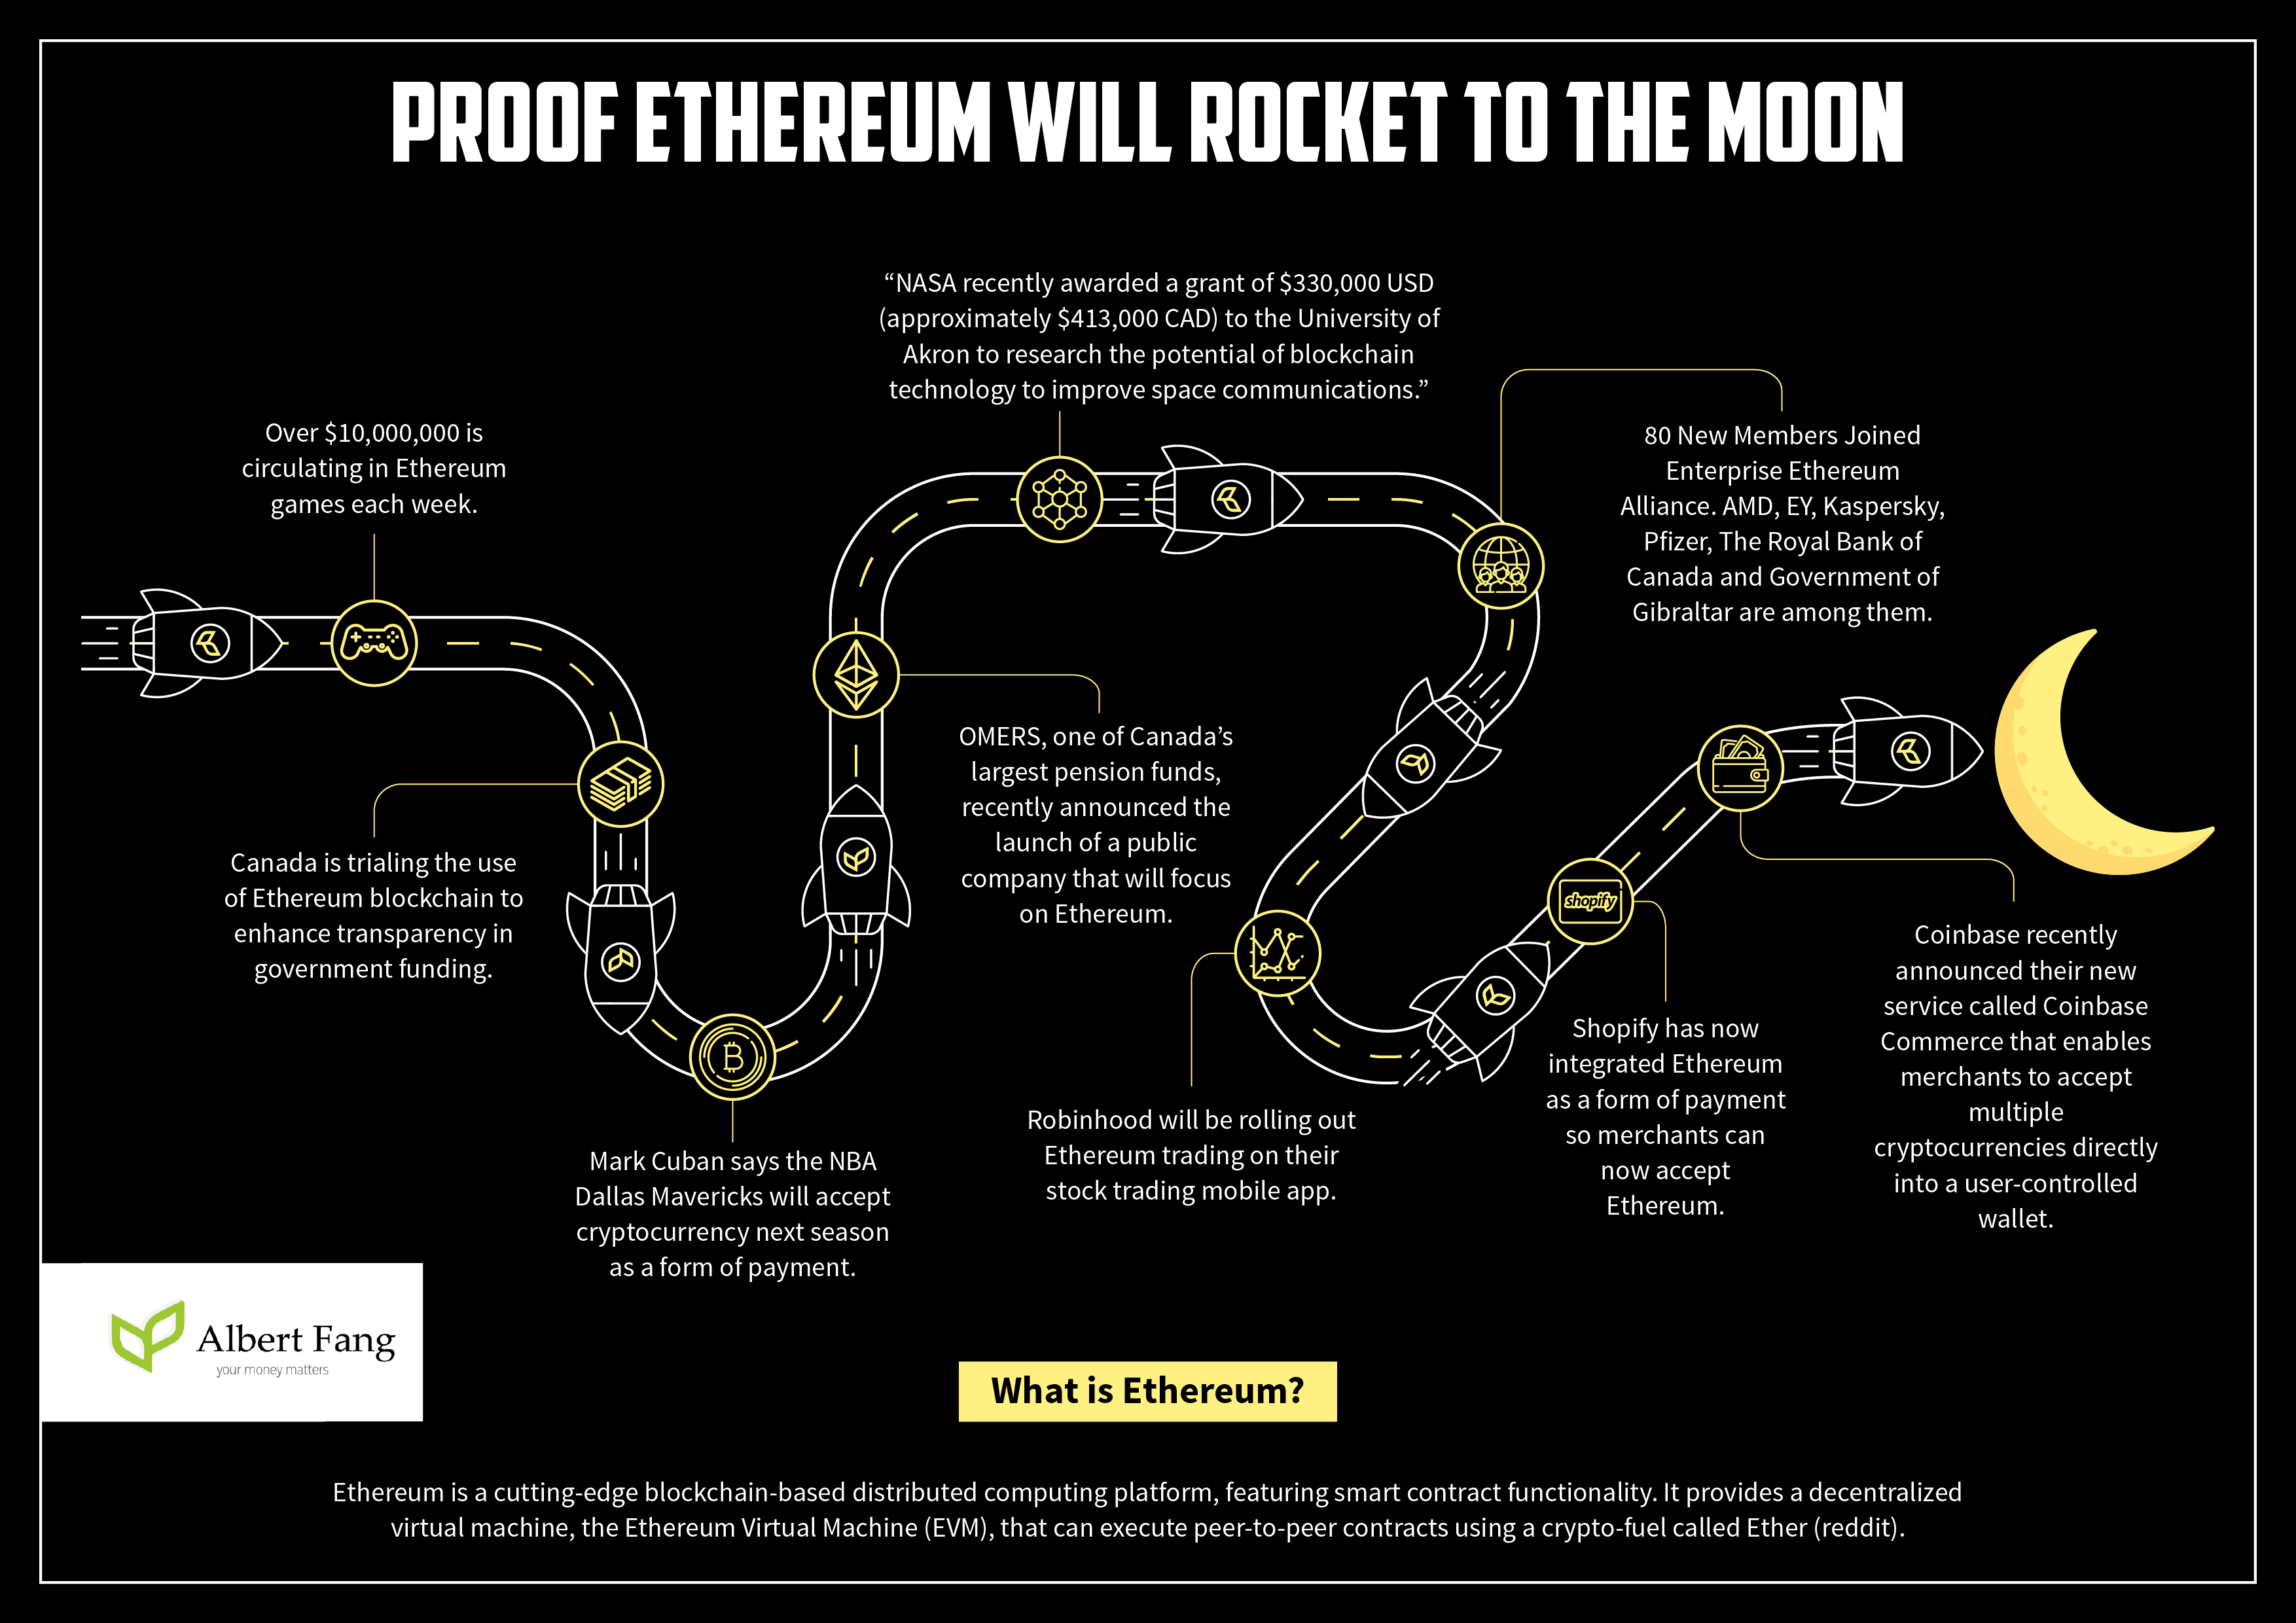 Proof Ethereum Will Rocket to the Moon (fangalbert.com)